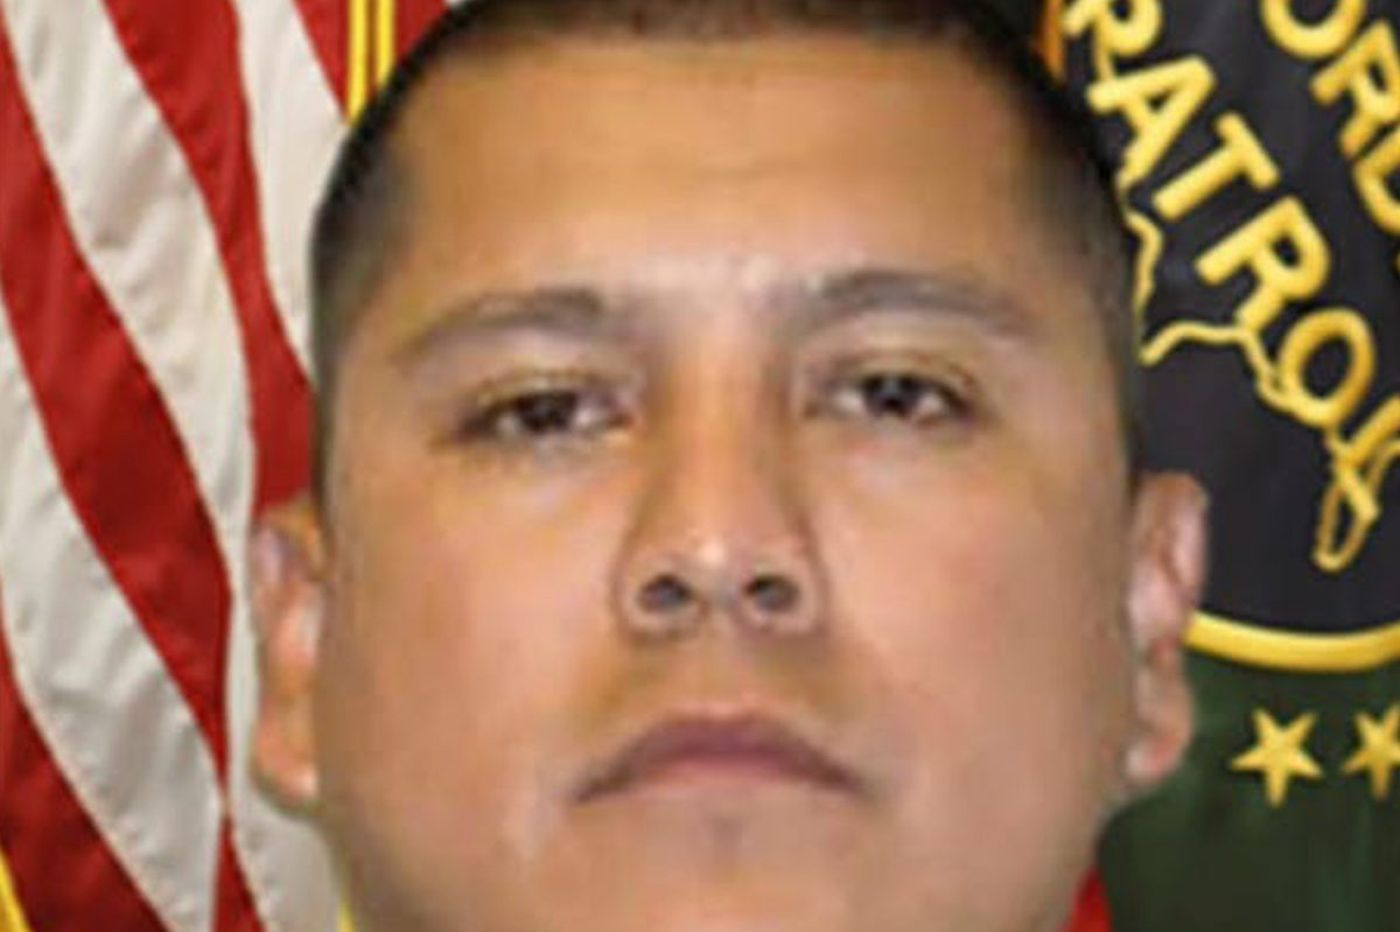 FBI questions brothers in the death of Border Patrol agent